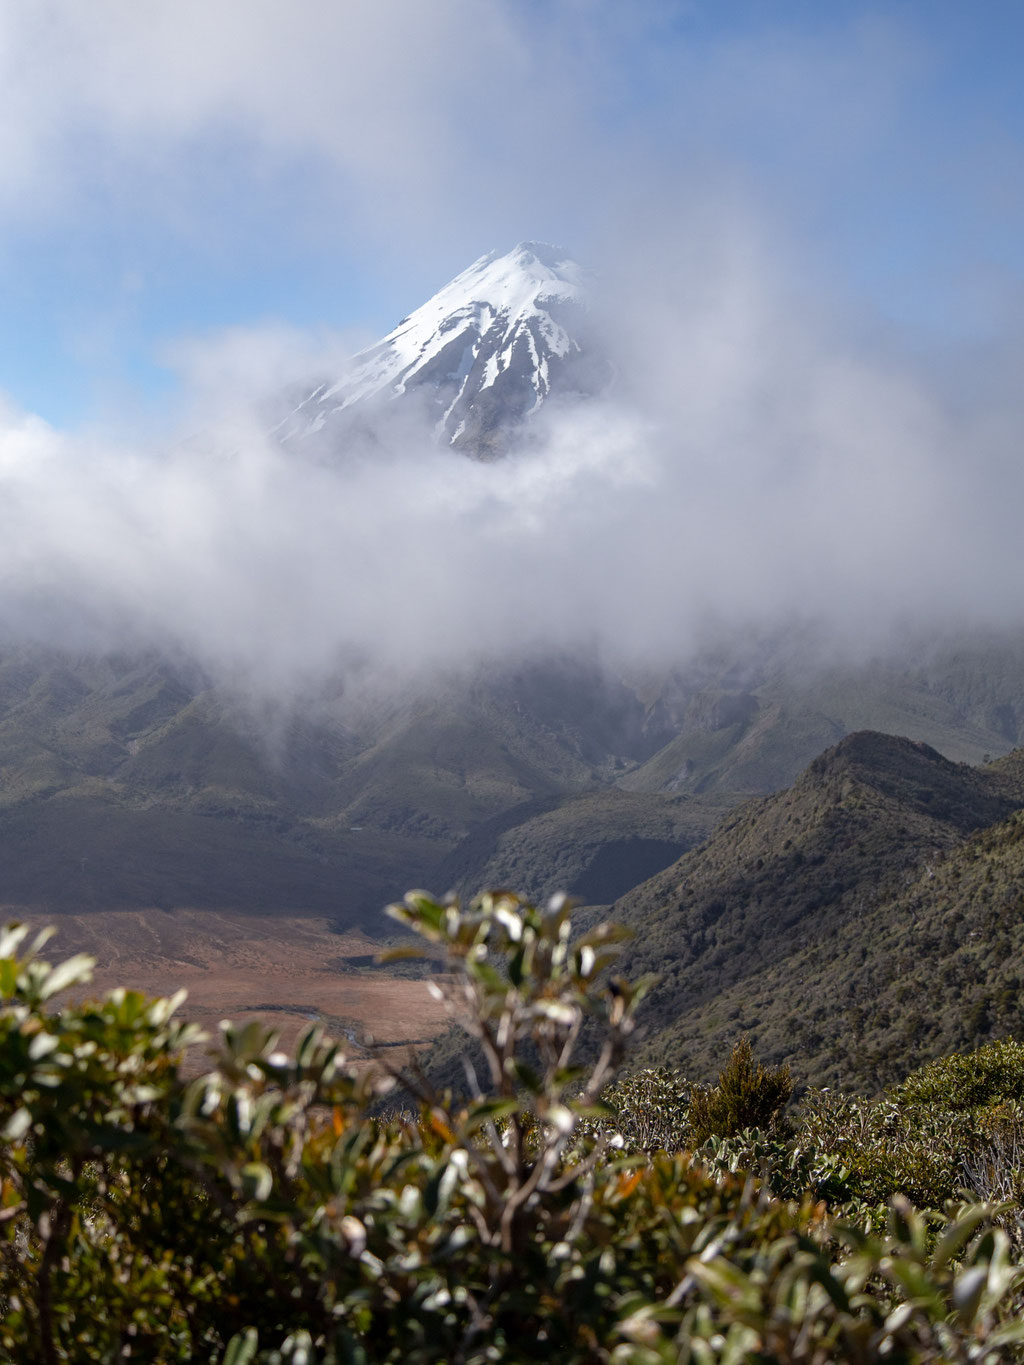 The Taranaki Volcano peaking from behind the clouds